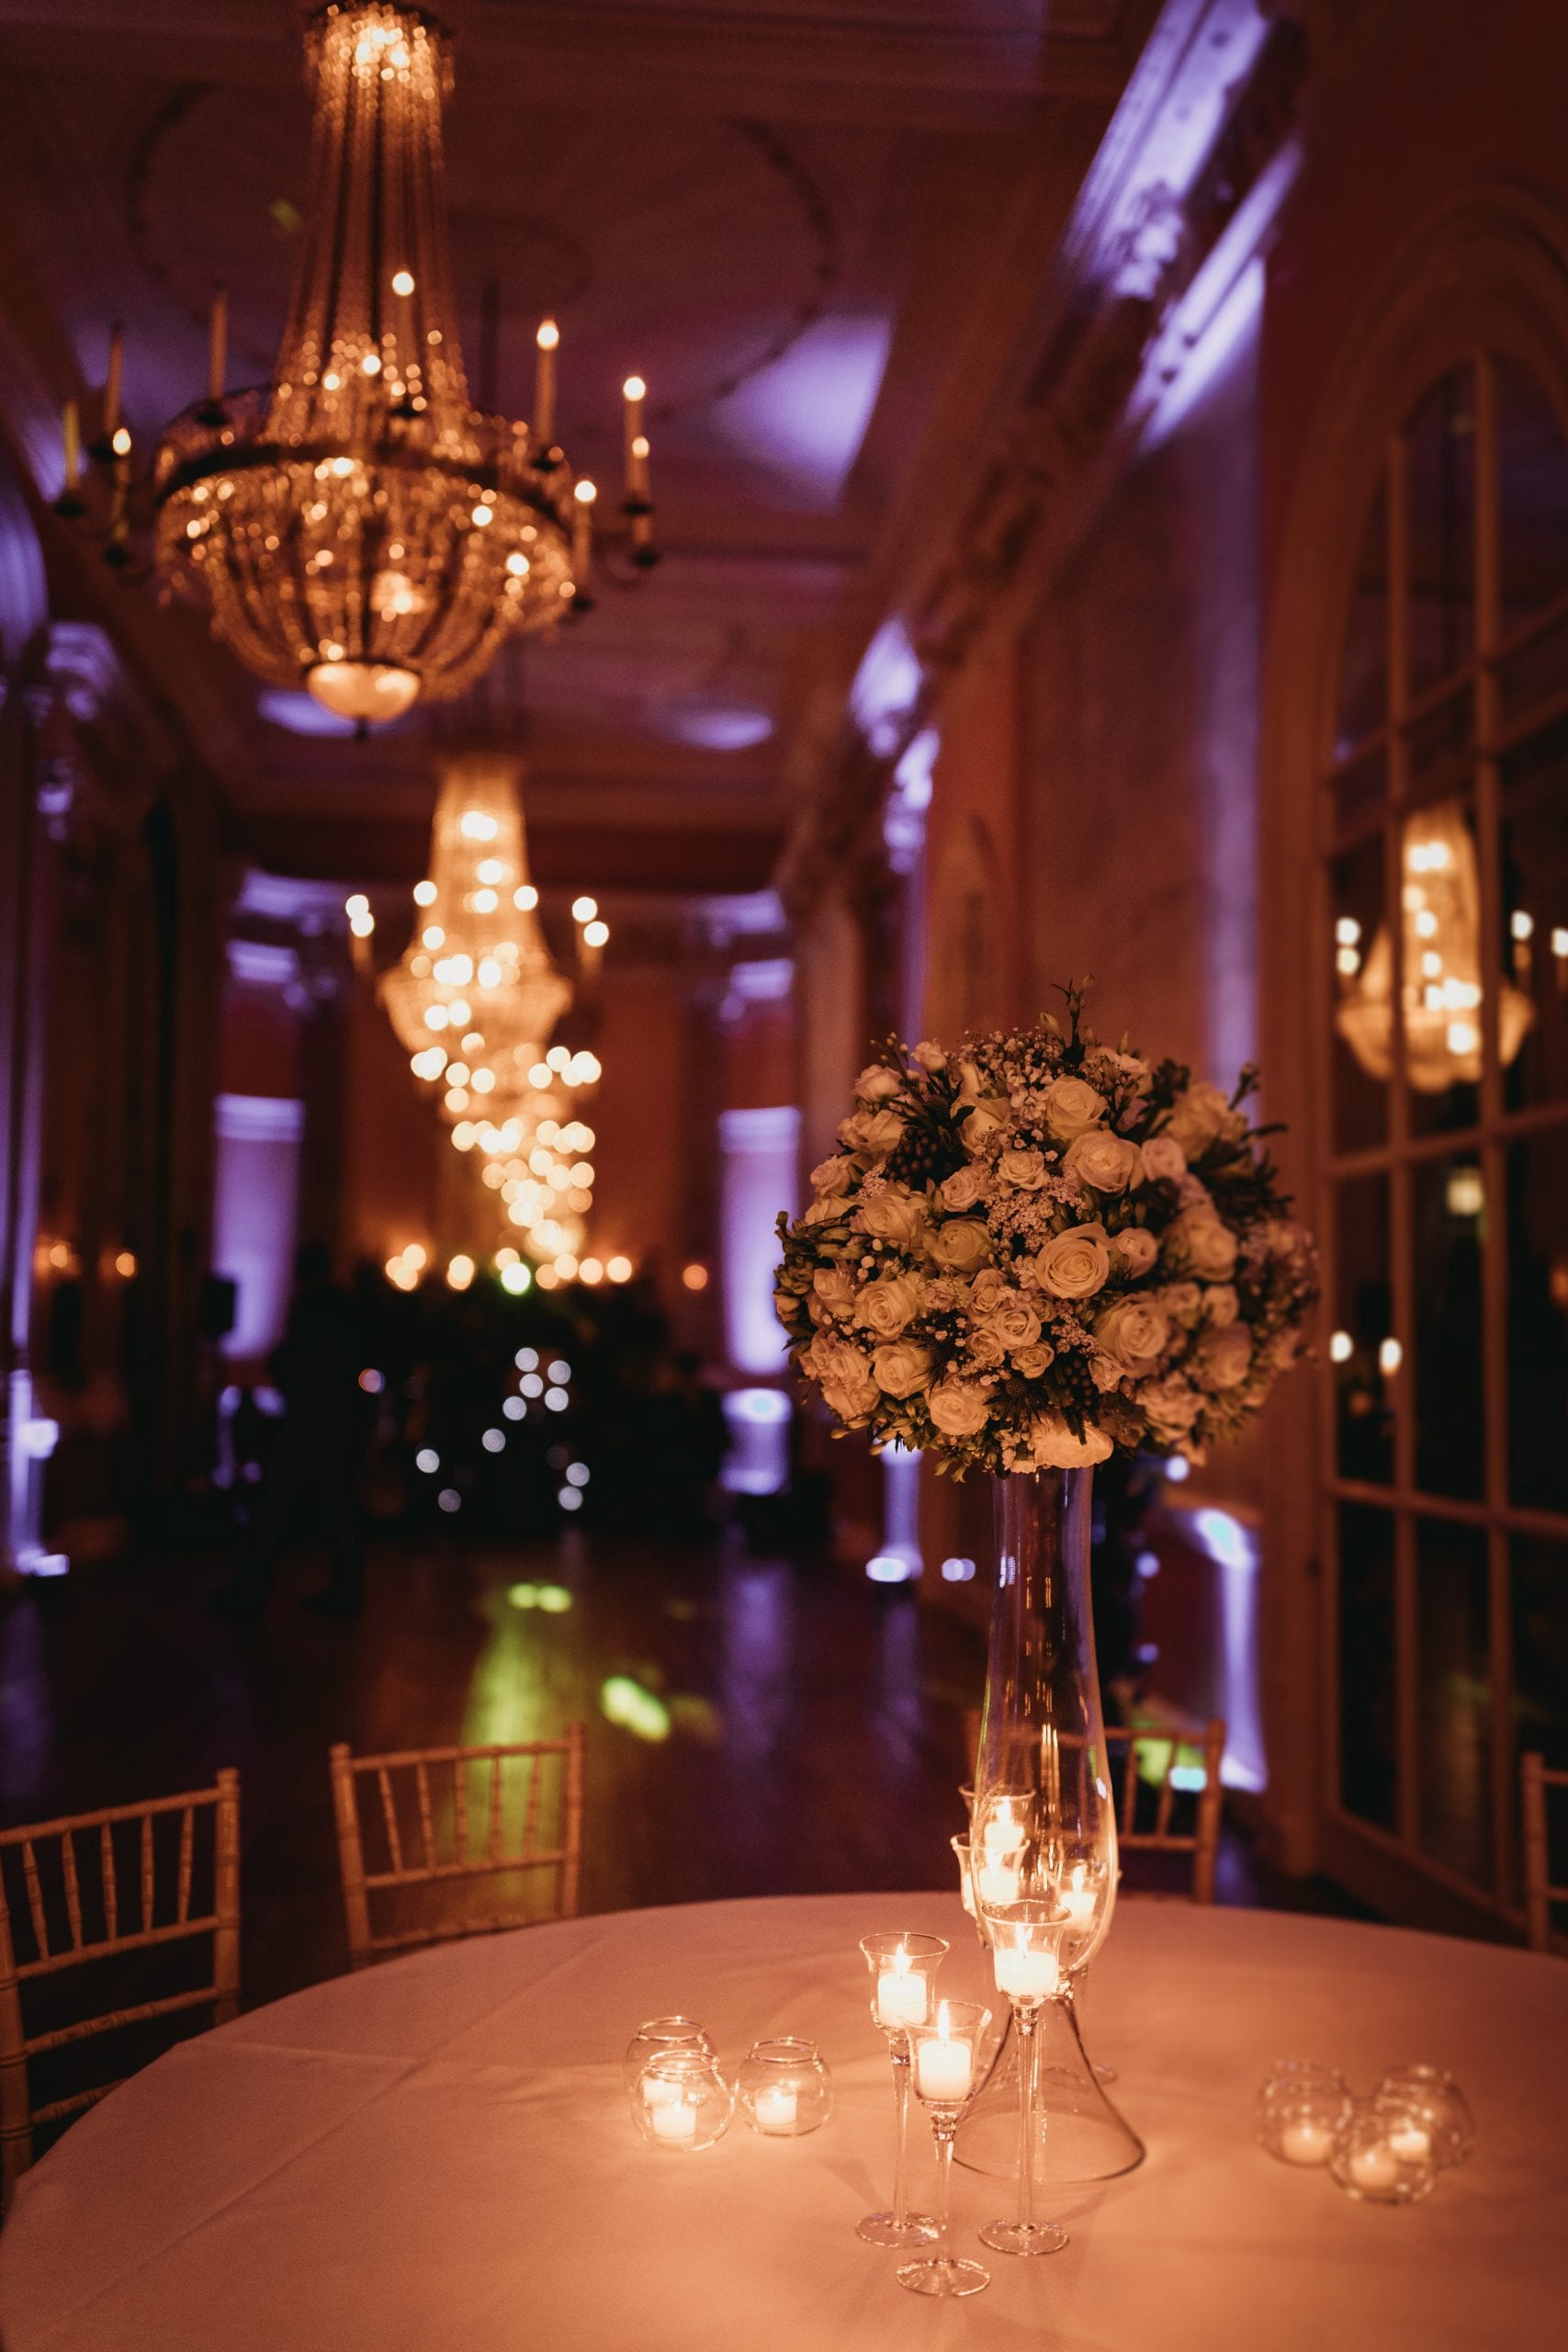 evening room details at a Danesfield House wedding